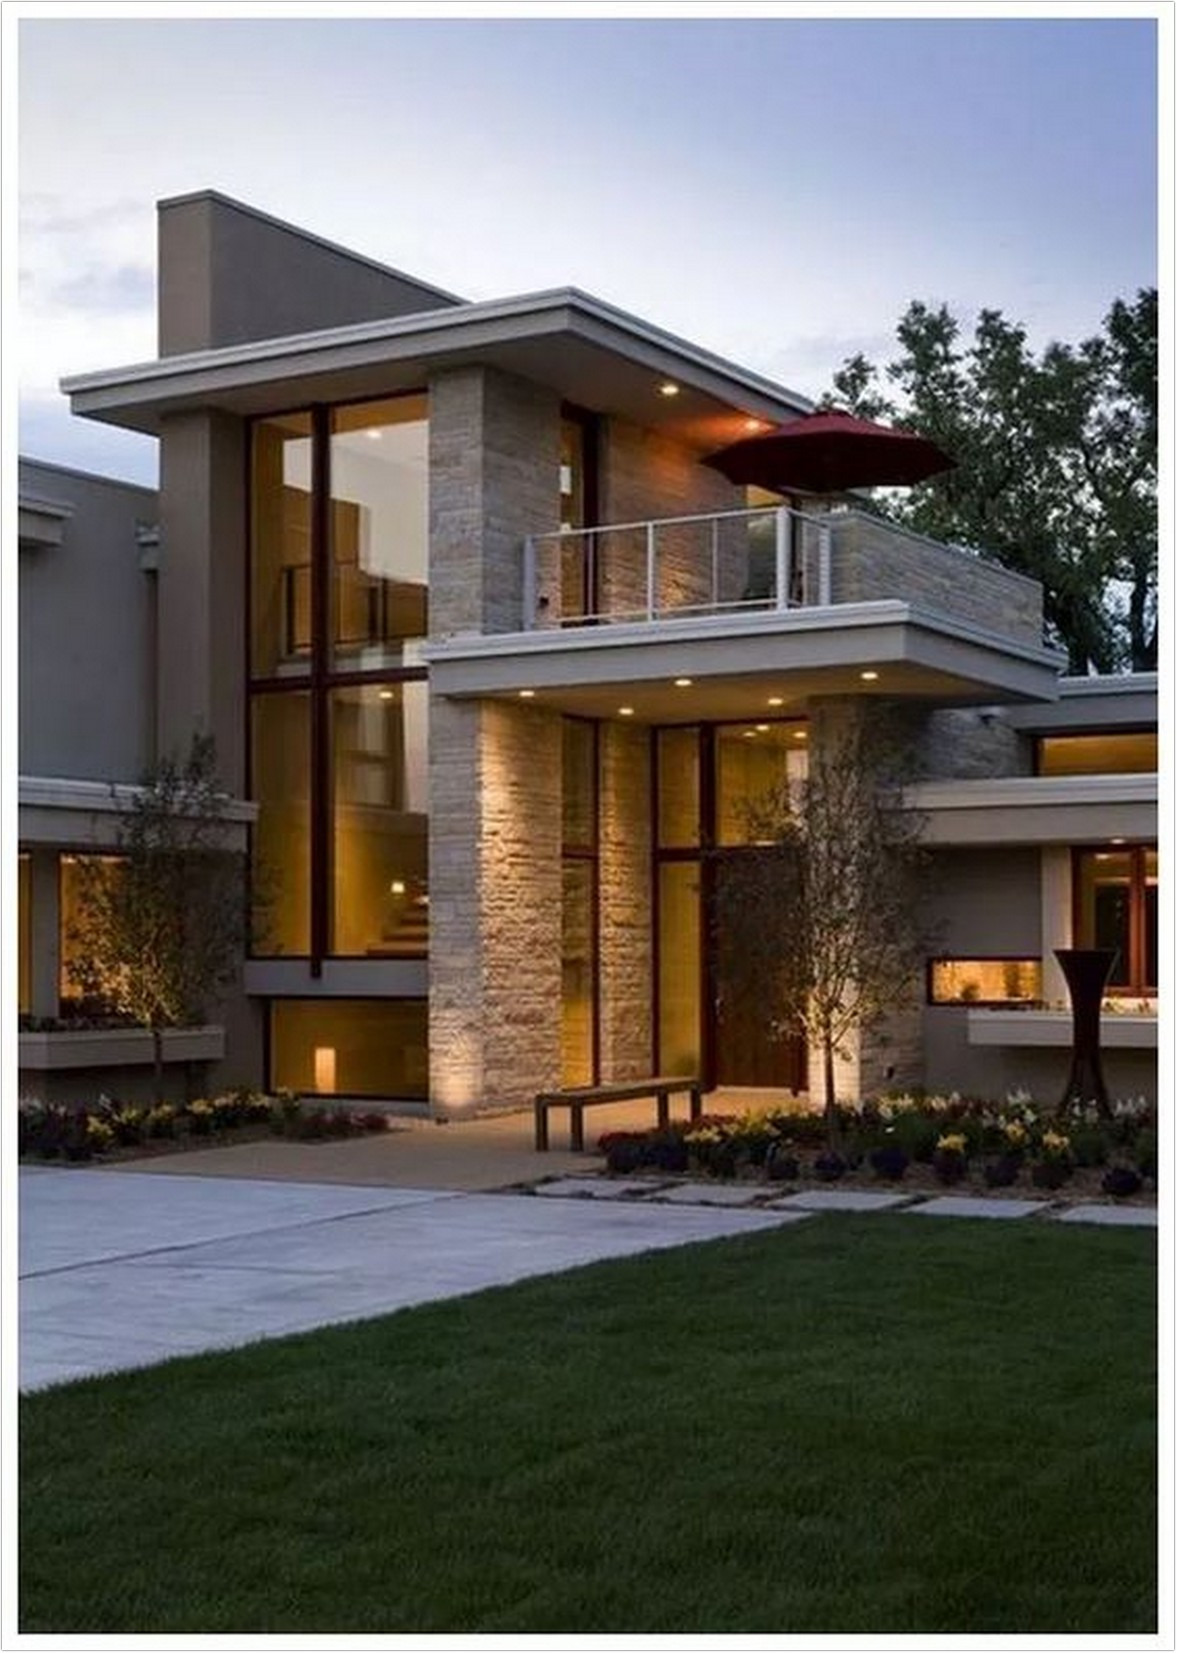 25 special edition modern house design for your 2020 architectural inspiration 25